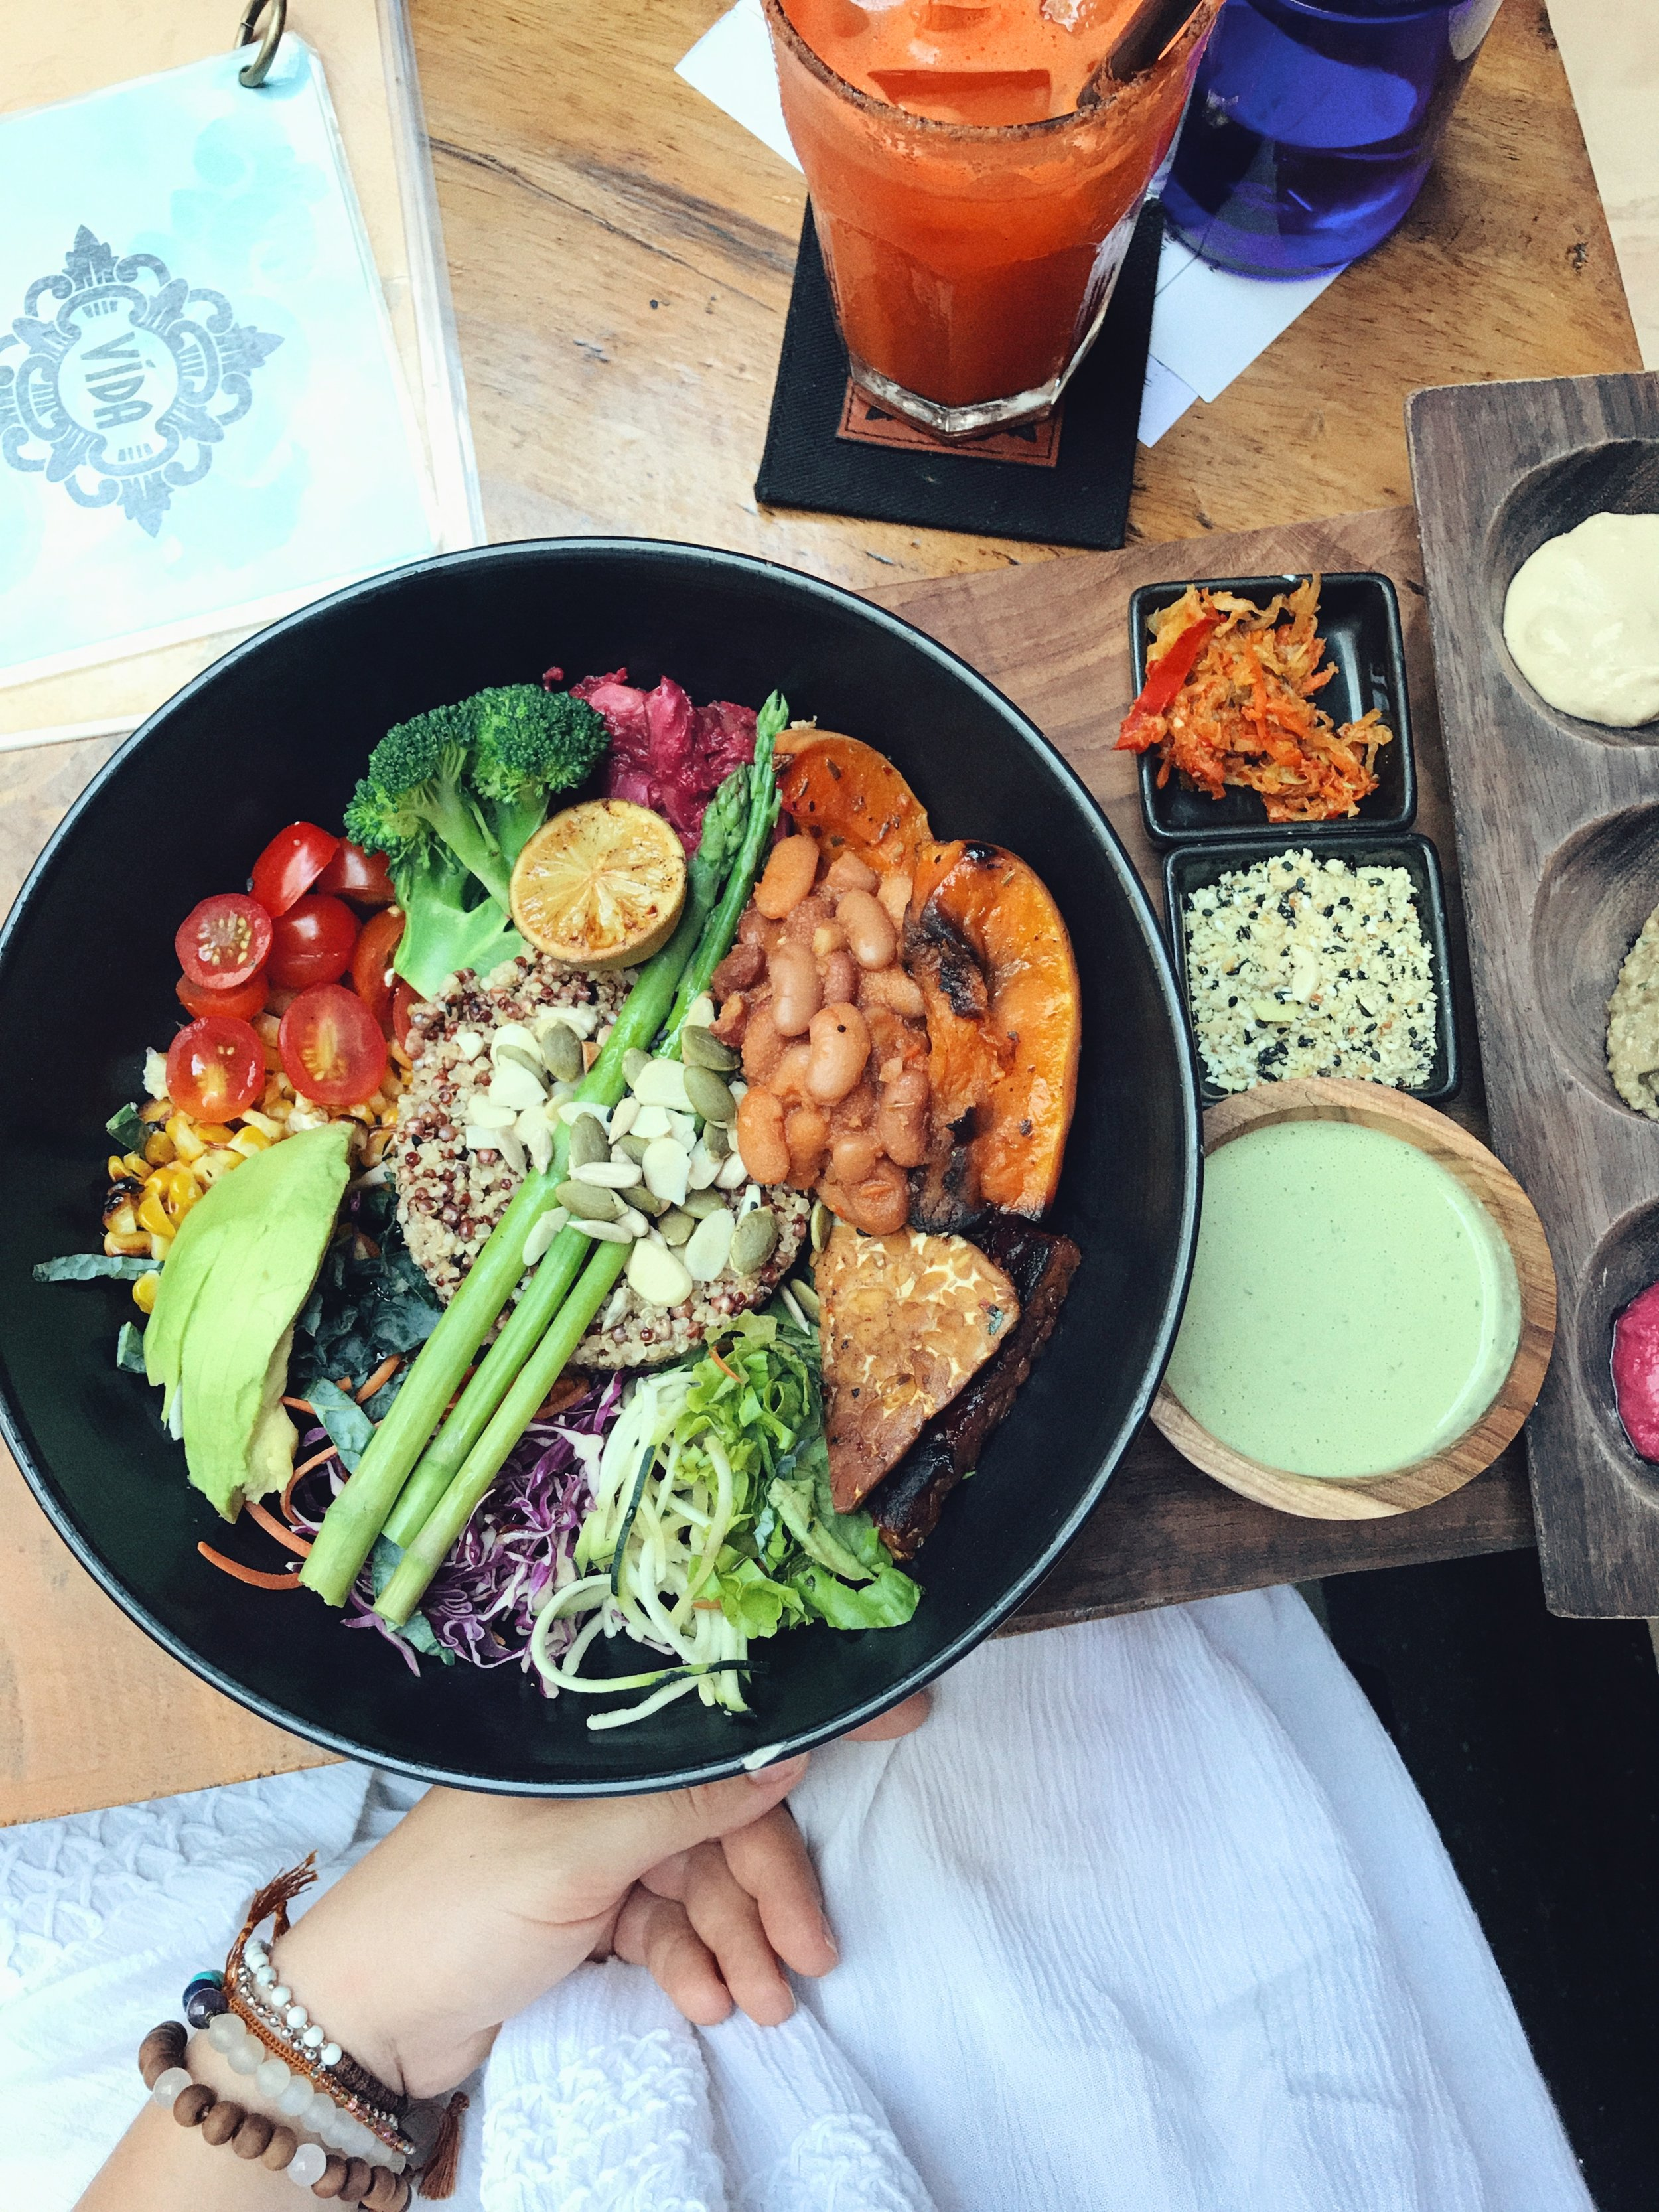 The healthy bowl. It is SO EXTRA. Gotta love a dish that offers an excess of condiments.